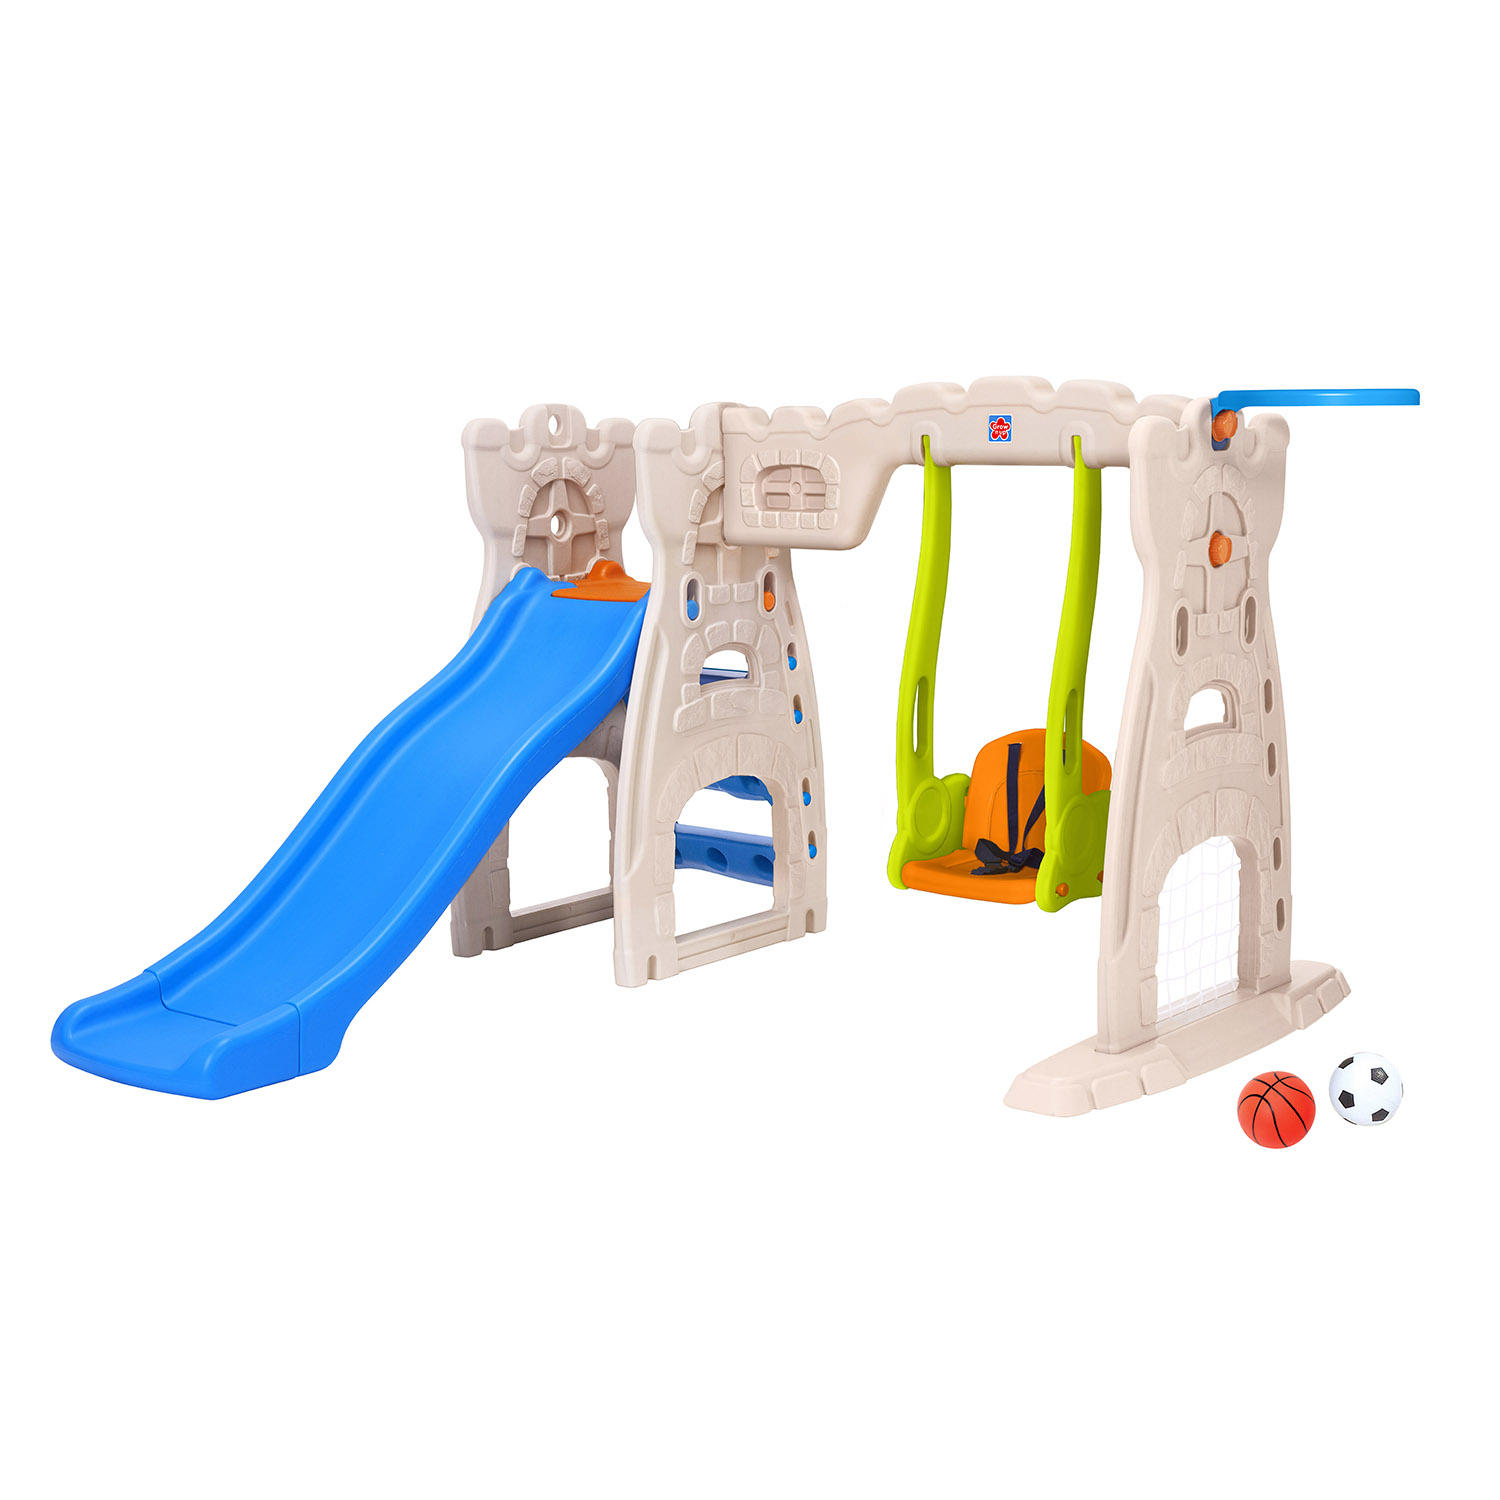 Grow N Up Limited Scramble 'N Slide Play Center